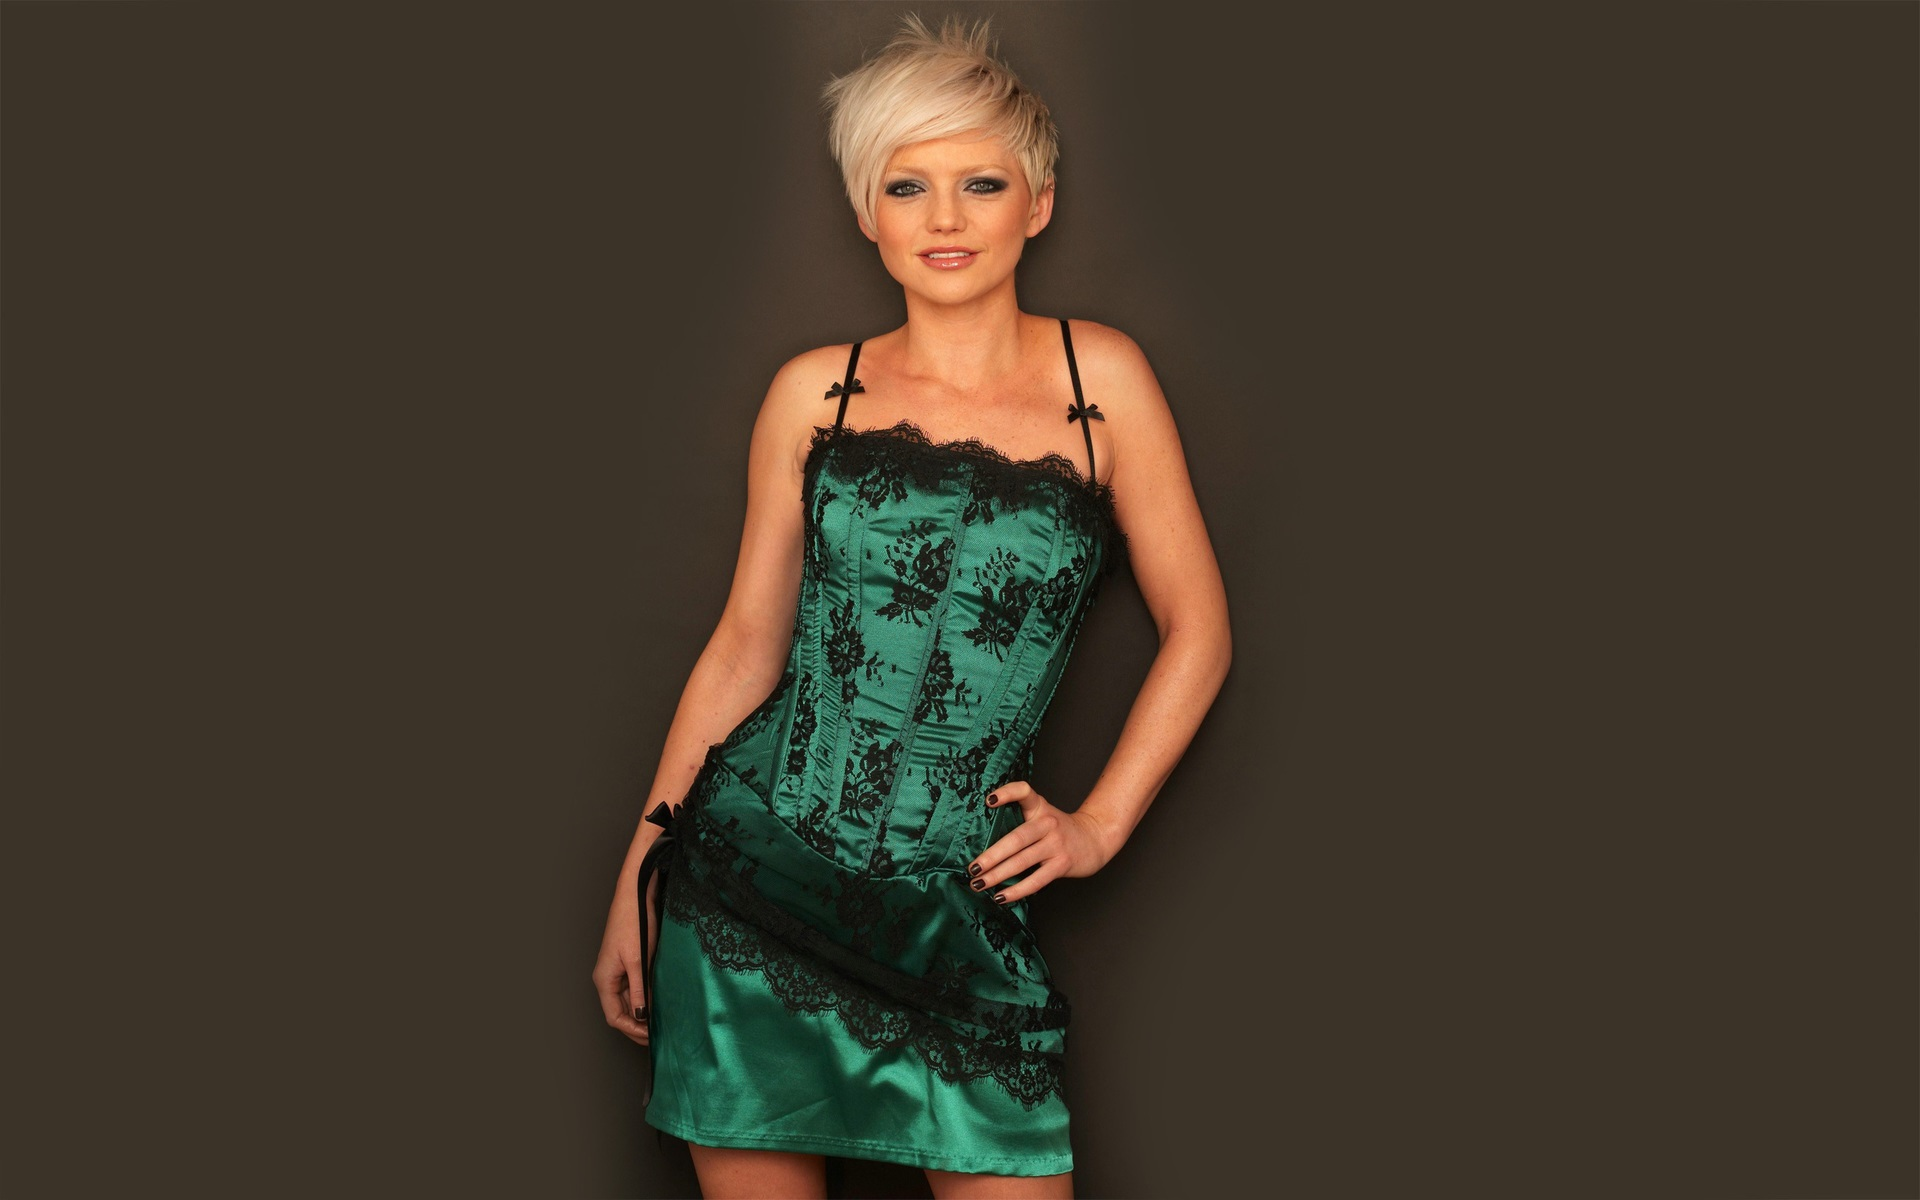 hannah spearritt teal dress wallpaper 645